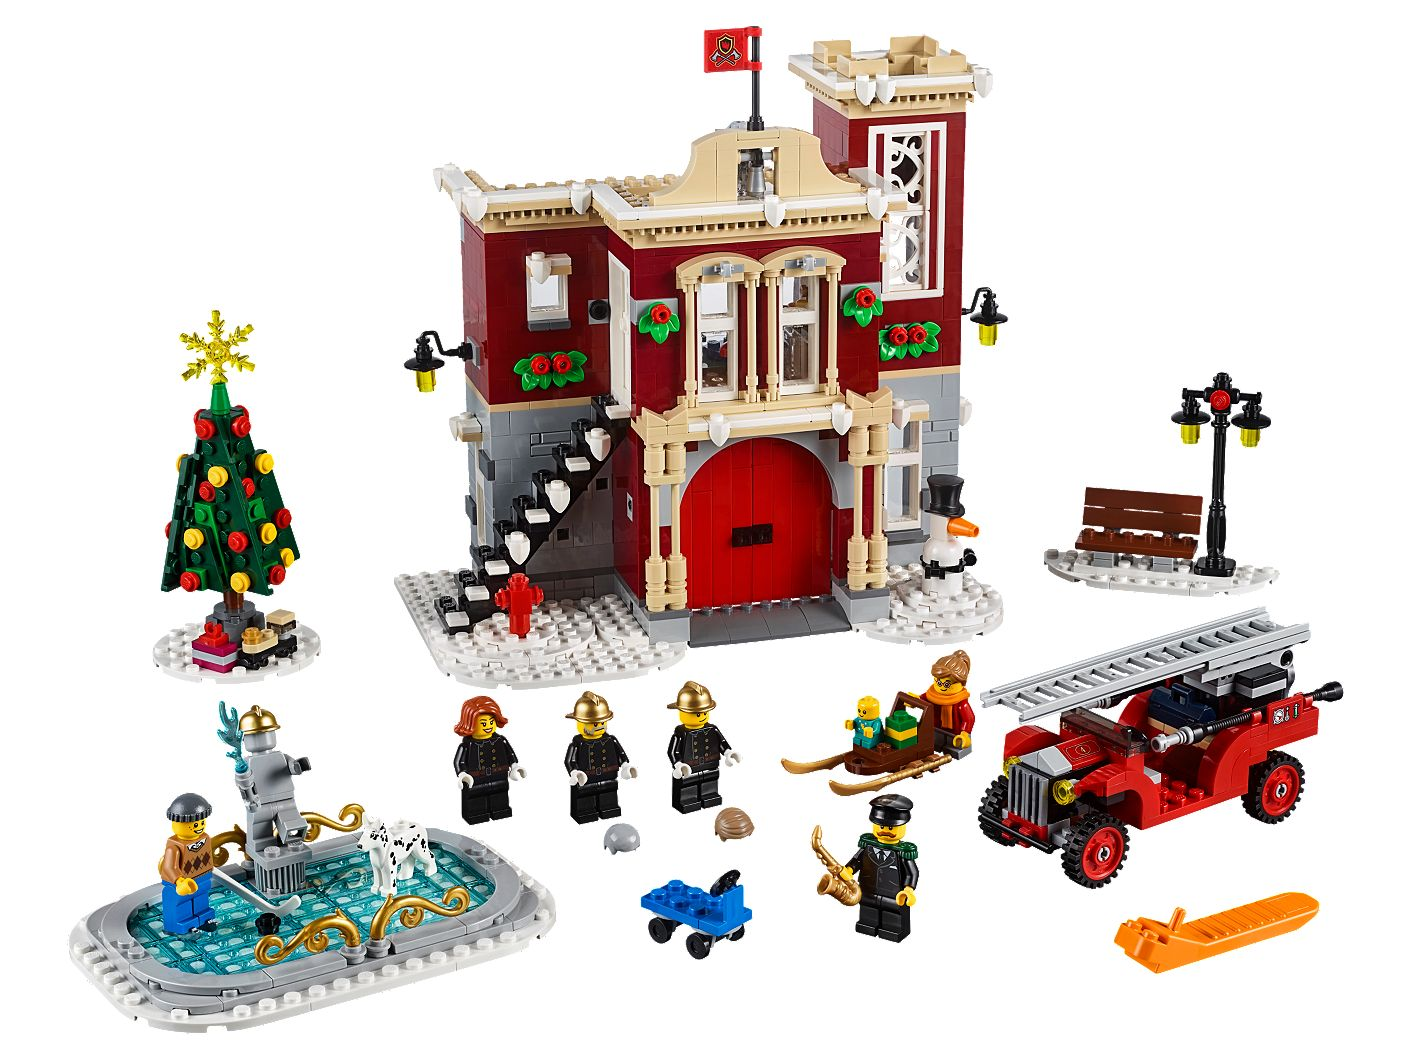 Lego Christmas.Winter Village Fire Station 10263 Creator Expert Buy Online At The Official Lego Shop Us